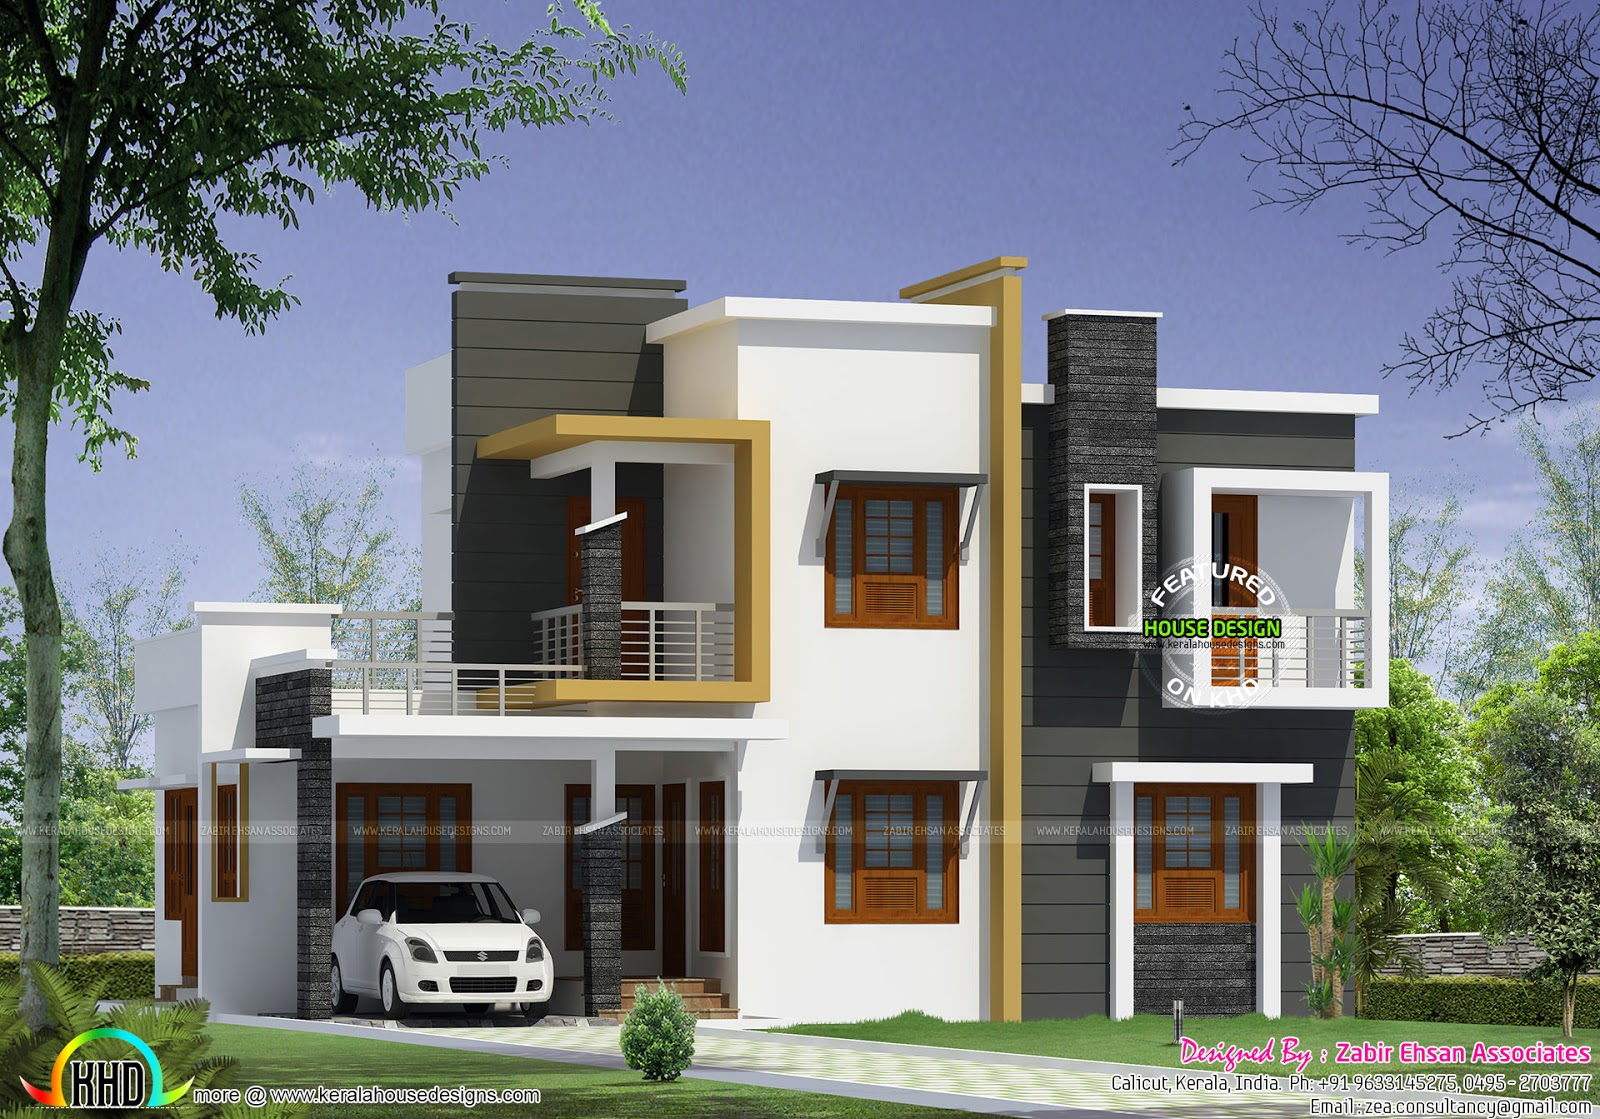 Box style homes Types of house plans